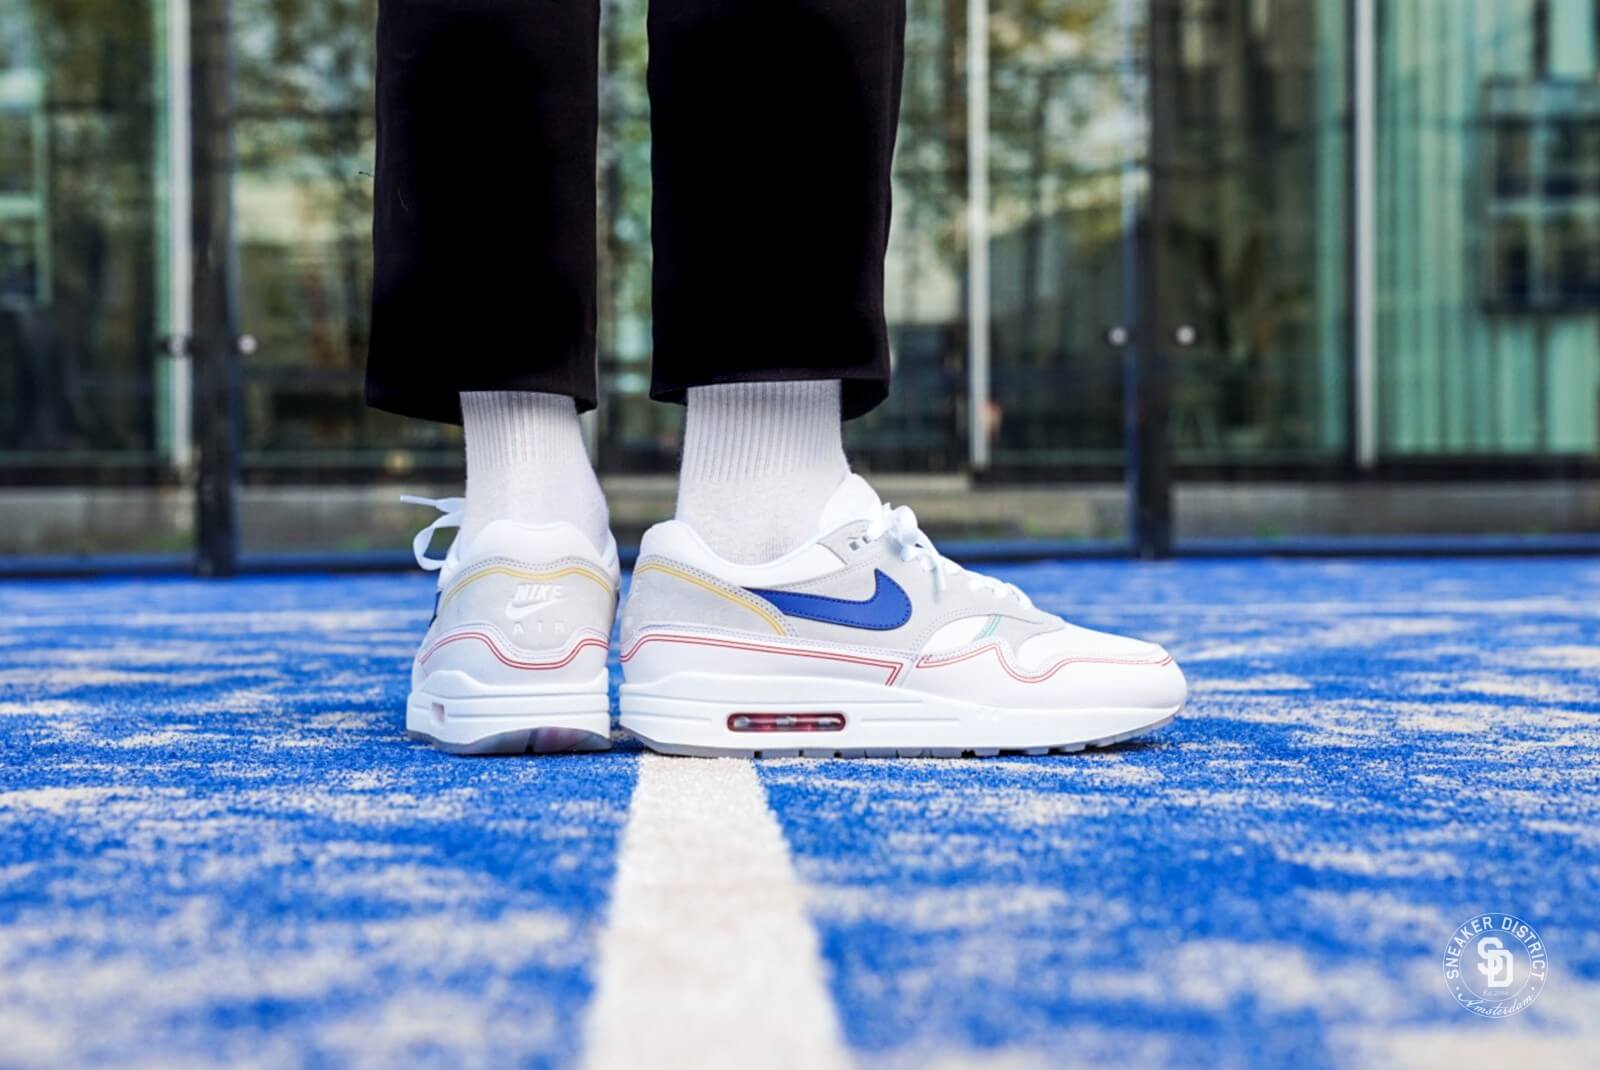 on feet images of online here cute cheap Nike Air Max 1 By Day Pure Platinum/Royal Blue-White - AV3735-002